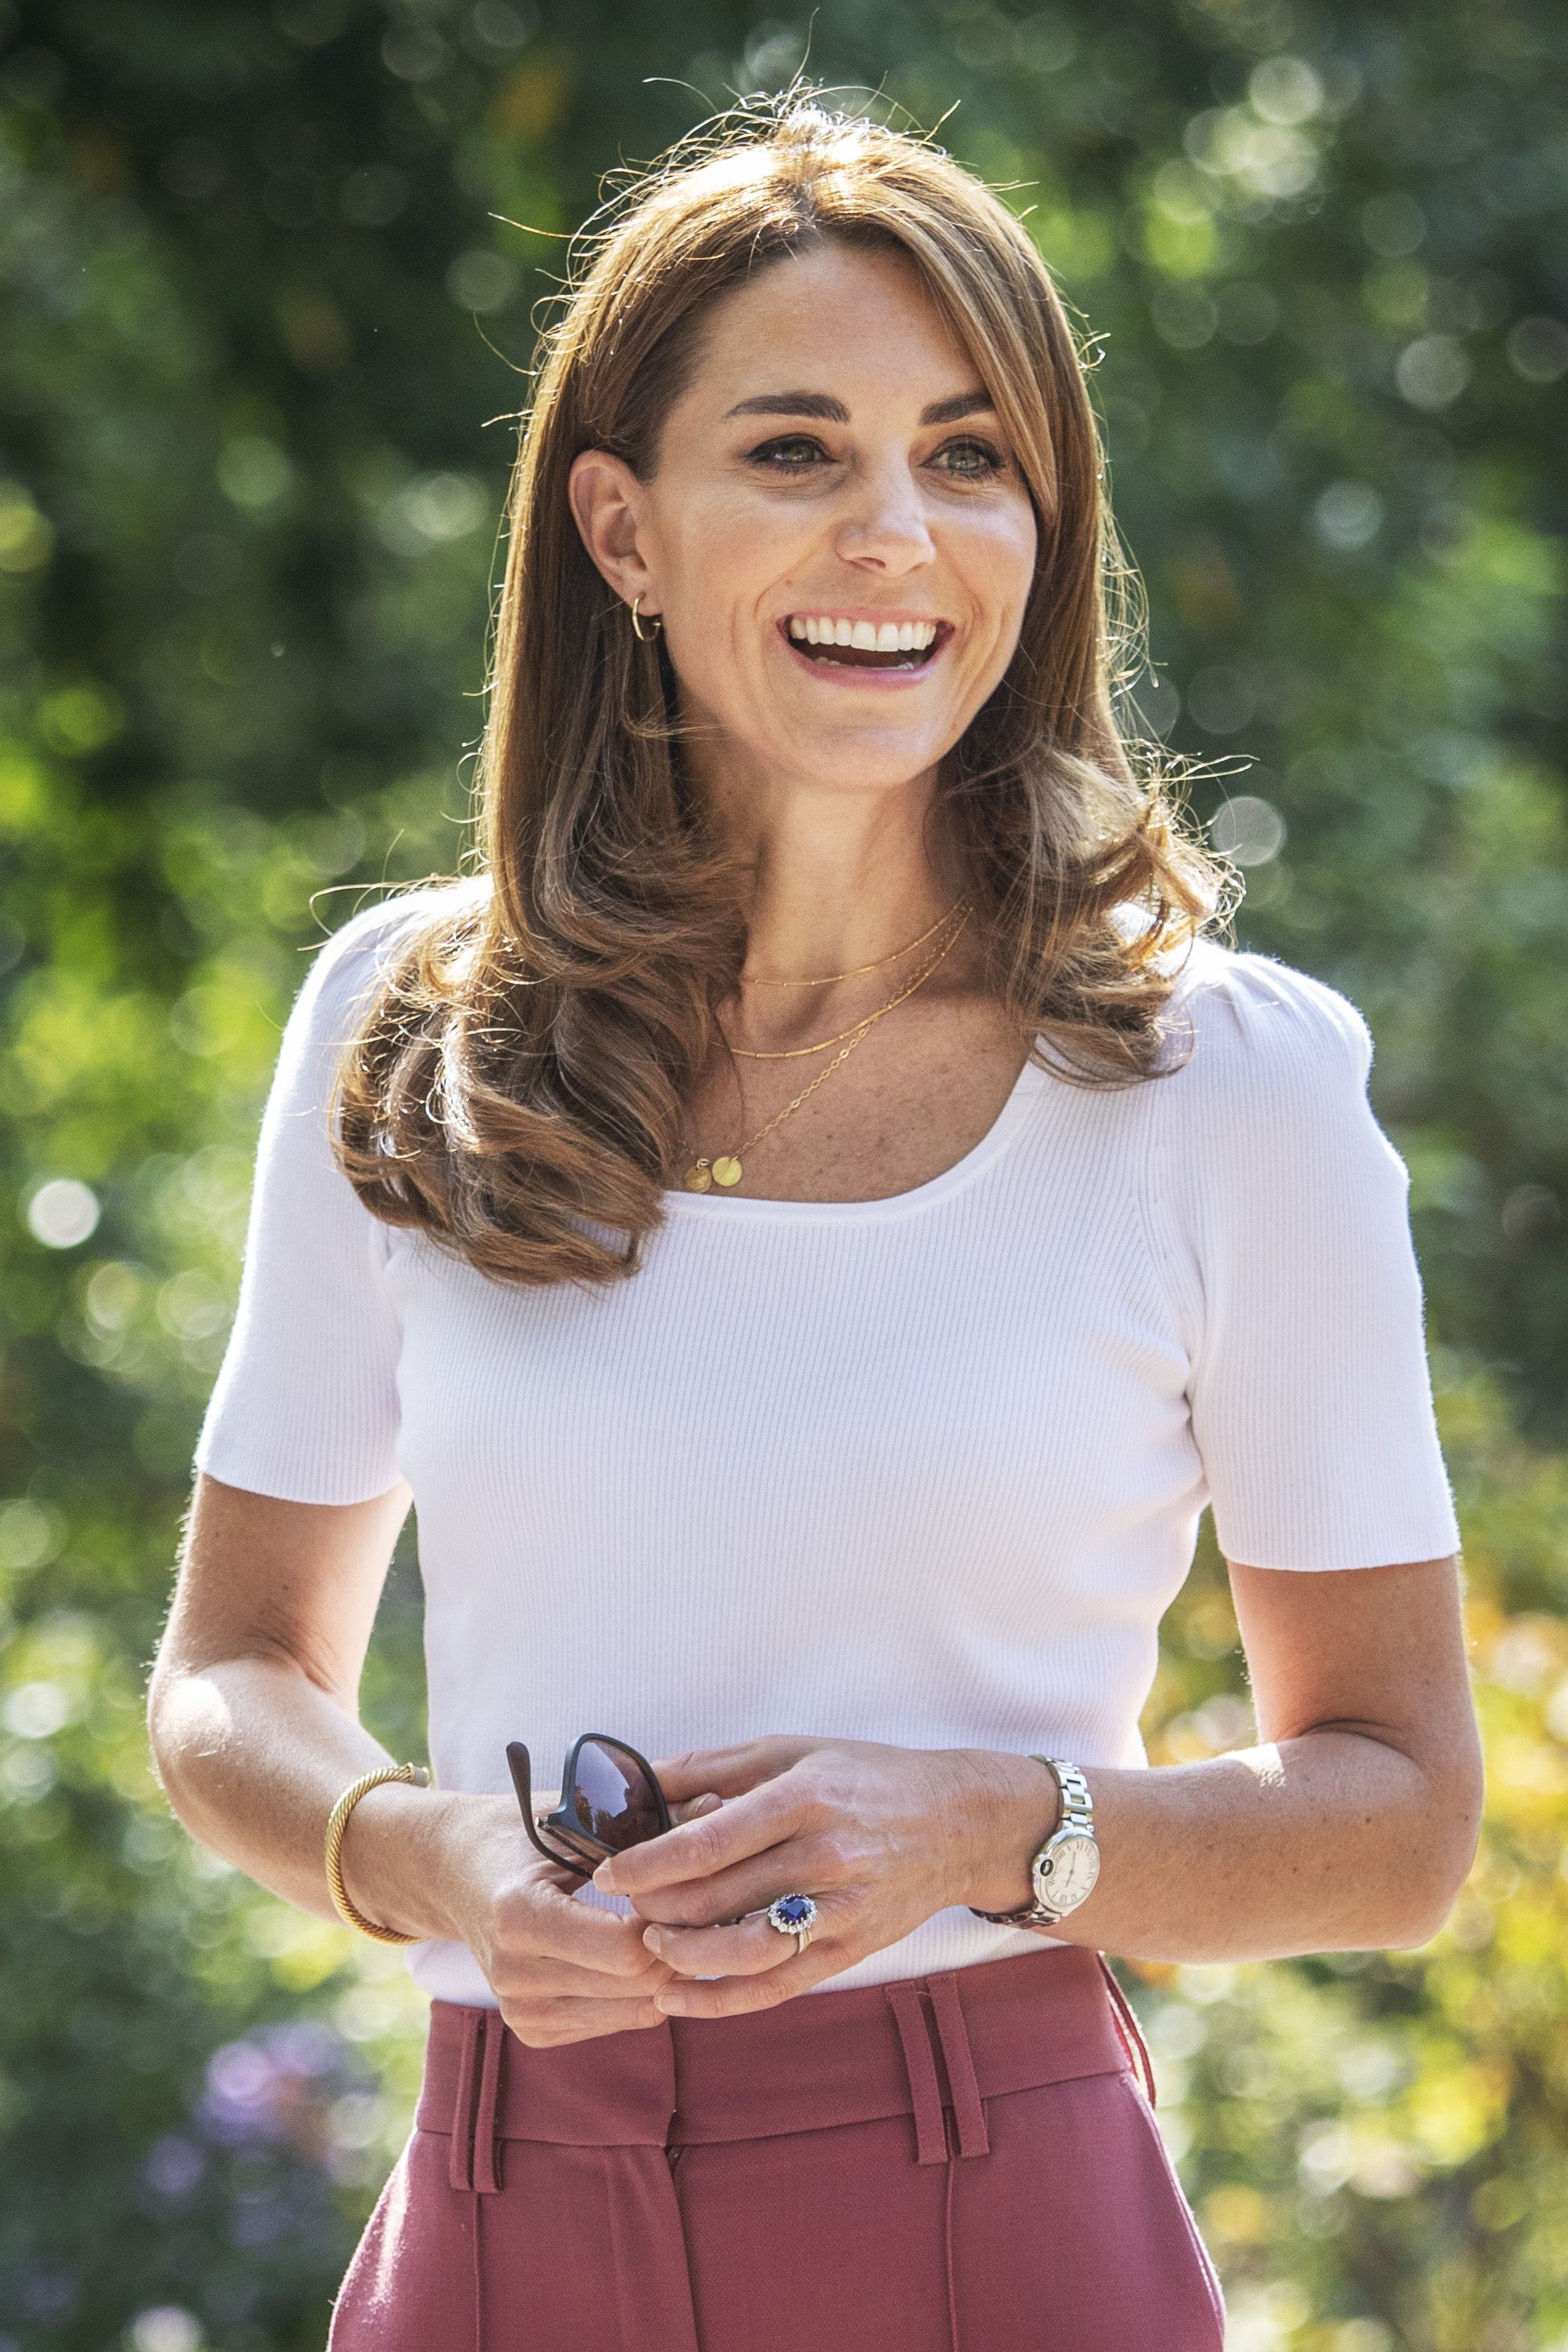 Kate Middleton Wore a Necklace with a Sweet Dedication to Her Three Children